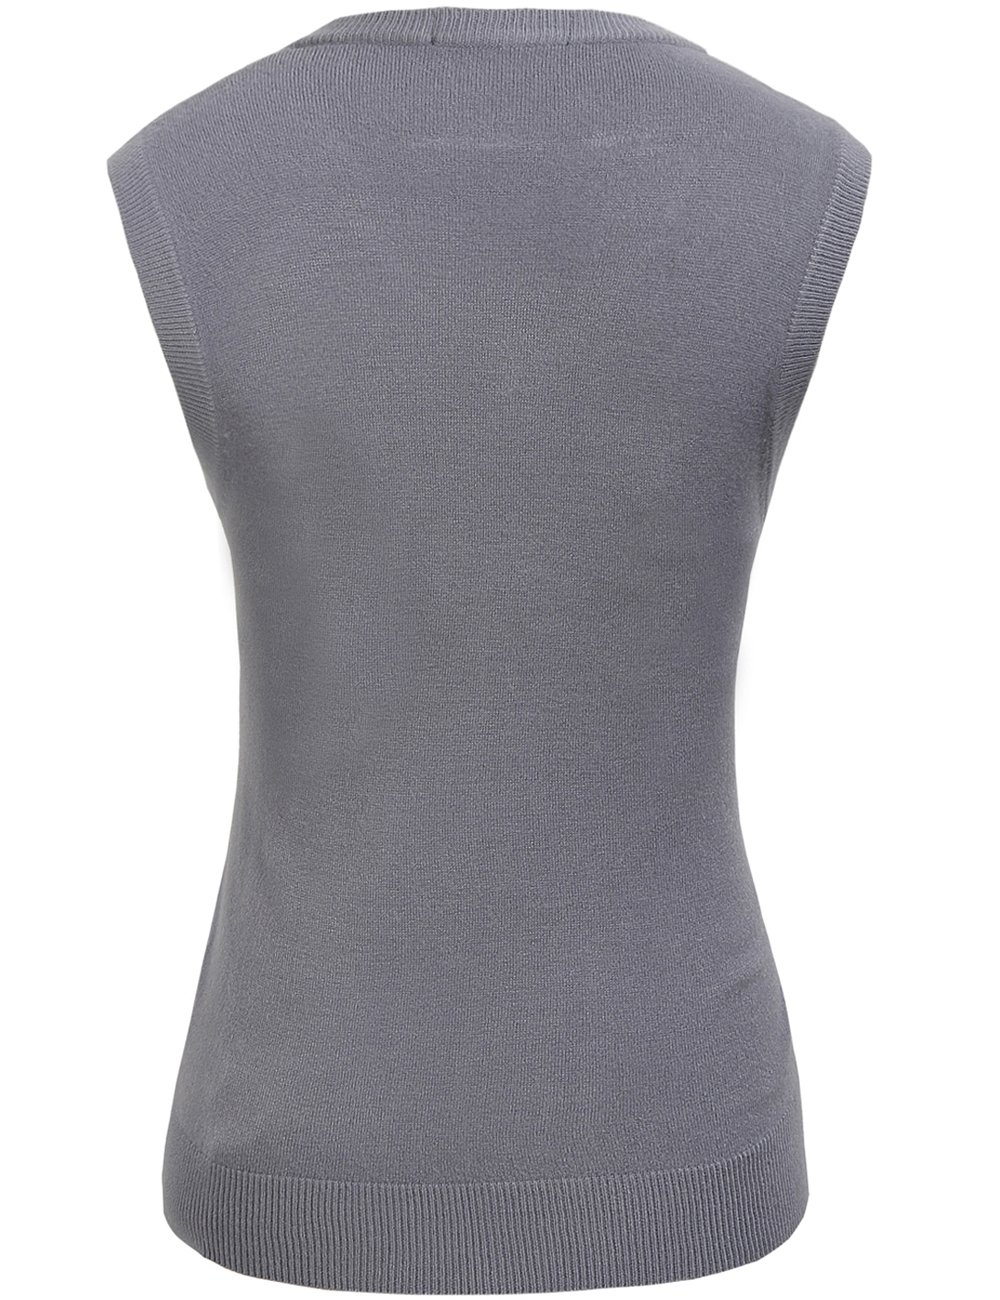 Camii Mia Women's Solid Knit Classic V Neck Sleeveless Pullover Sweater Vest (Large, Grey) by Camii Mia (Image #2)